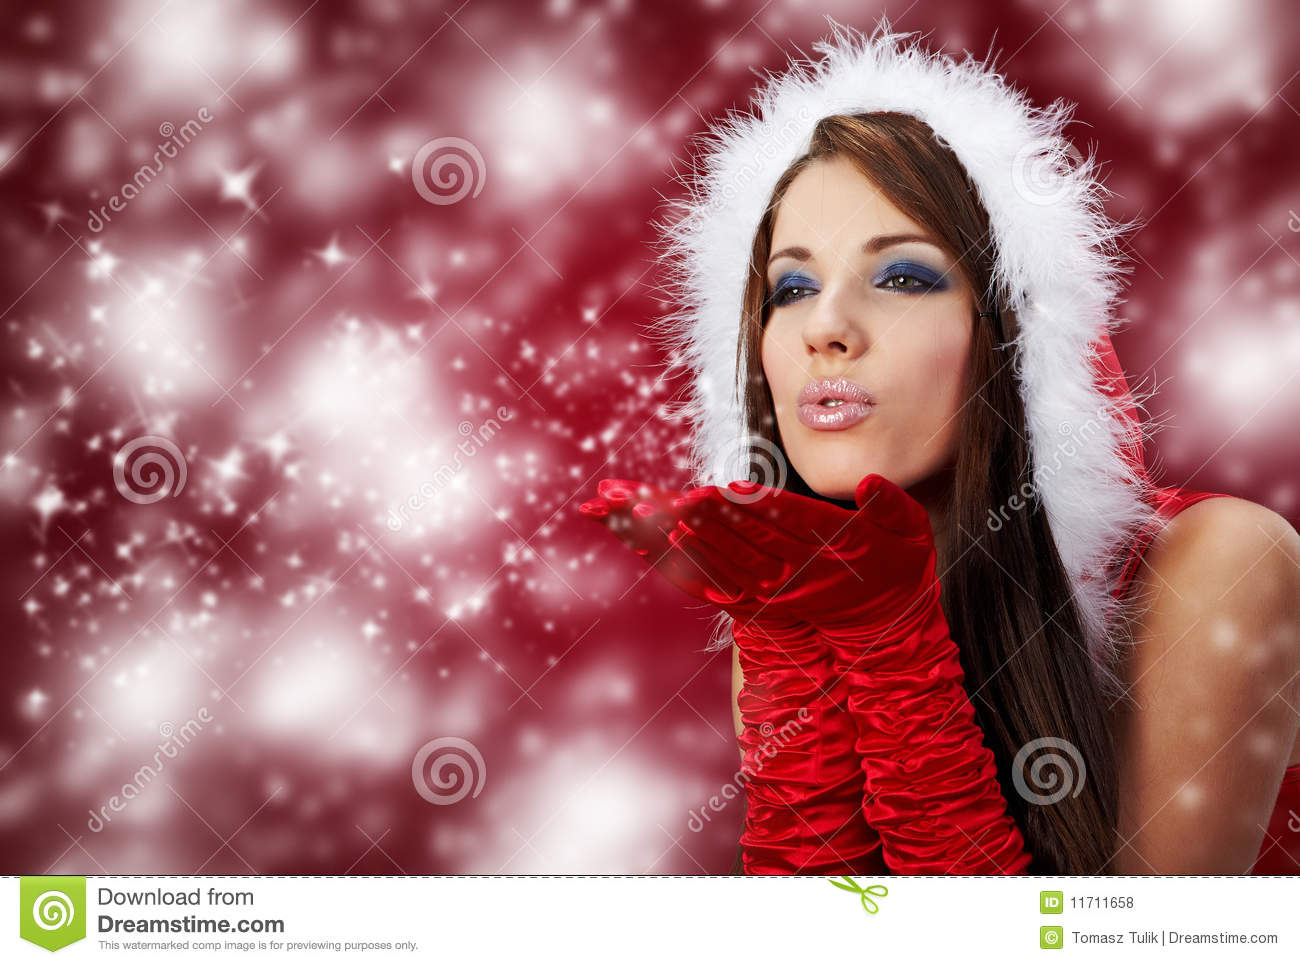 Cute Girly Wallpaper Free Download Girl Wearing Santa Claus Clothes On R Royalty Free Stock